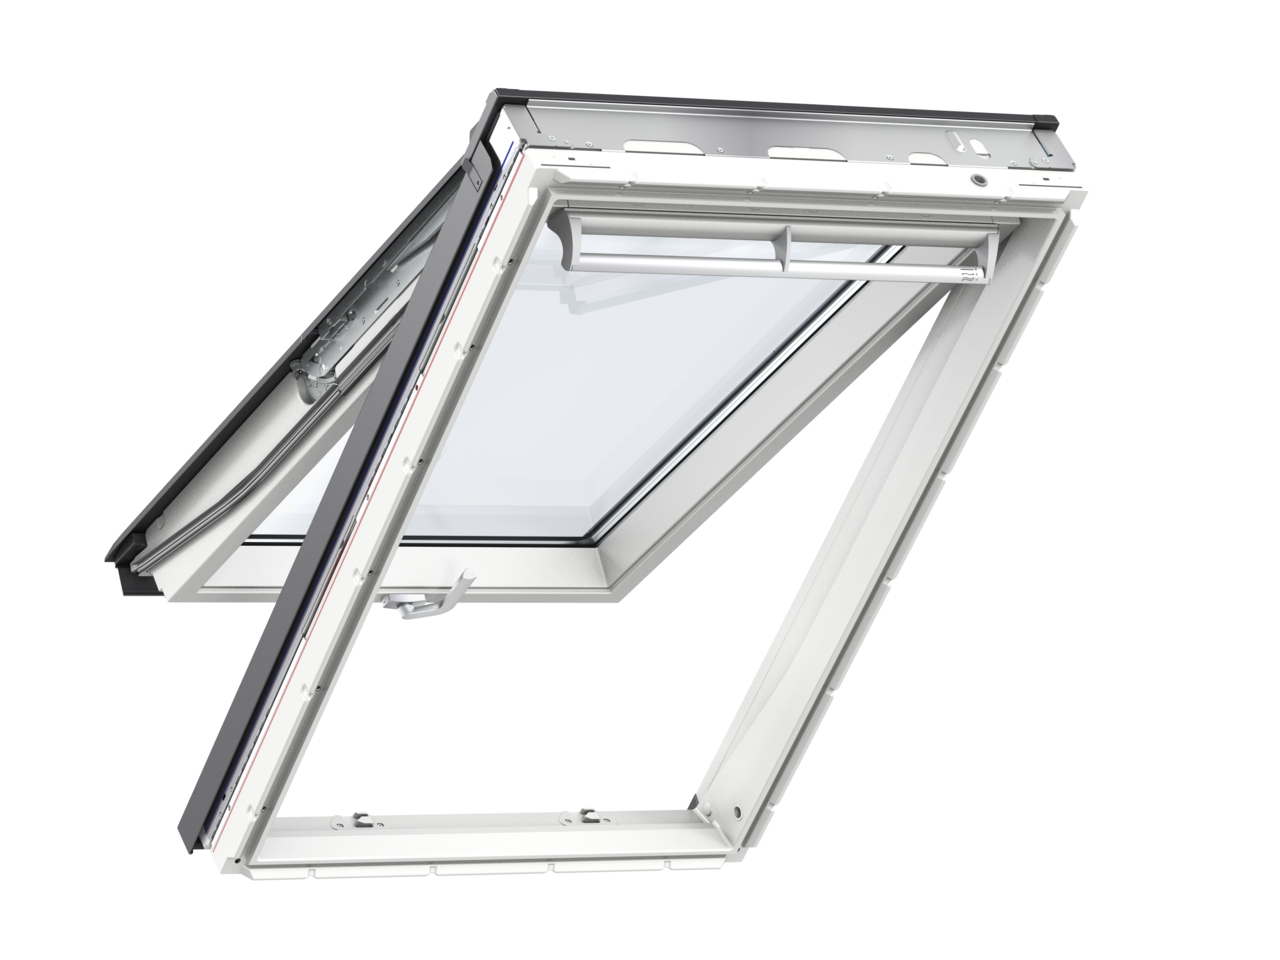 Velux GPU SK06 1140 x 1180mm Top Hung 66Pane Roof Window - White Polyurethane